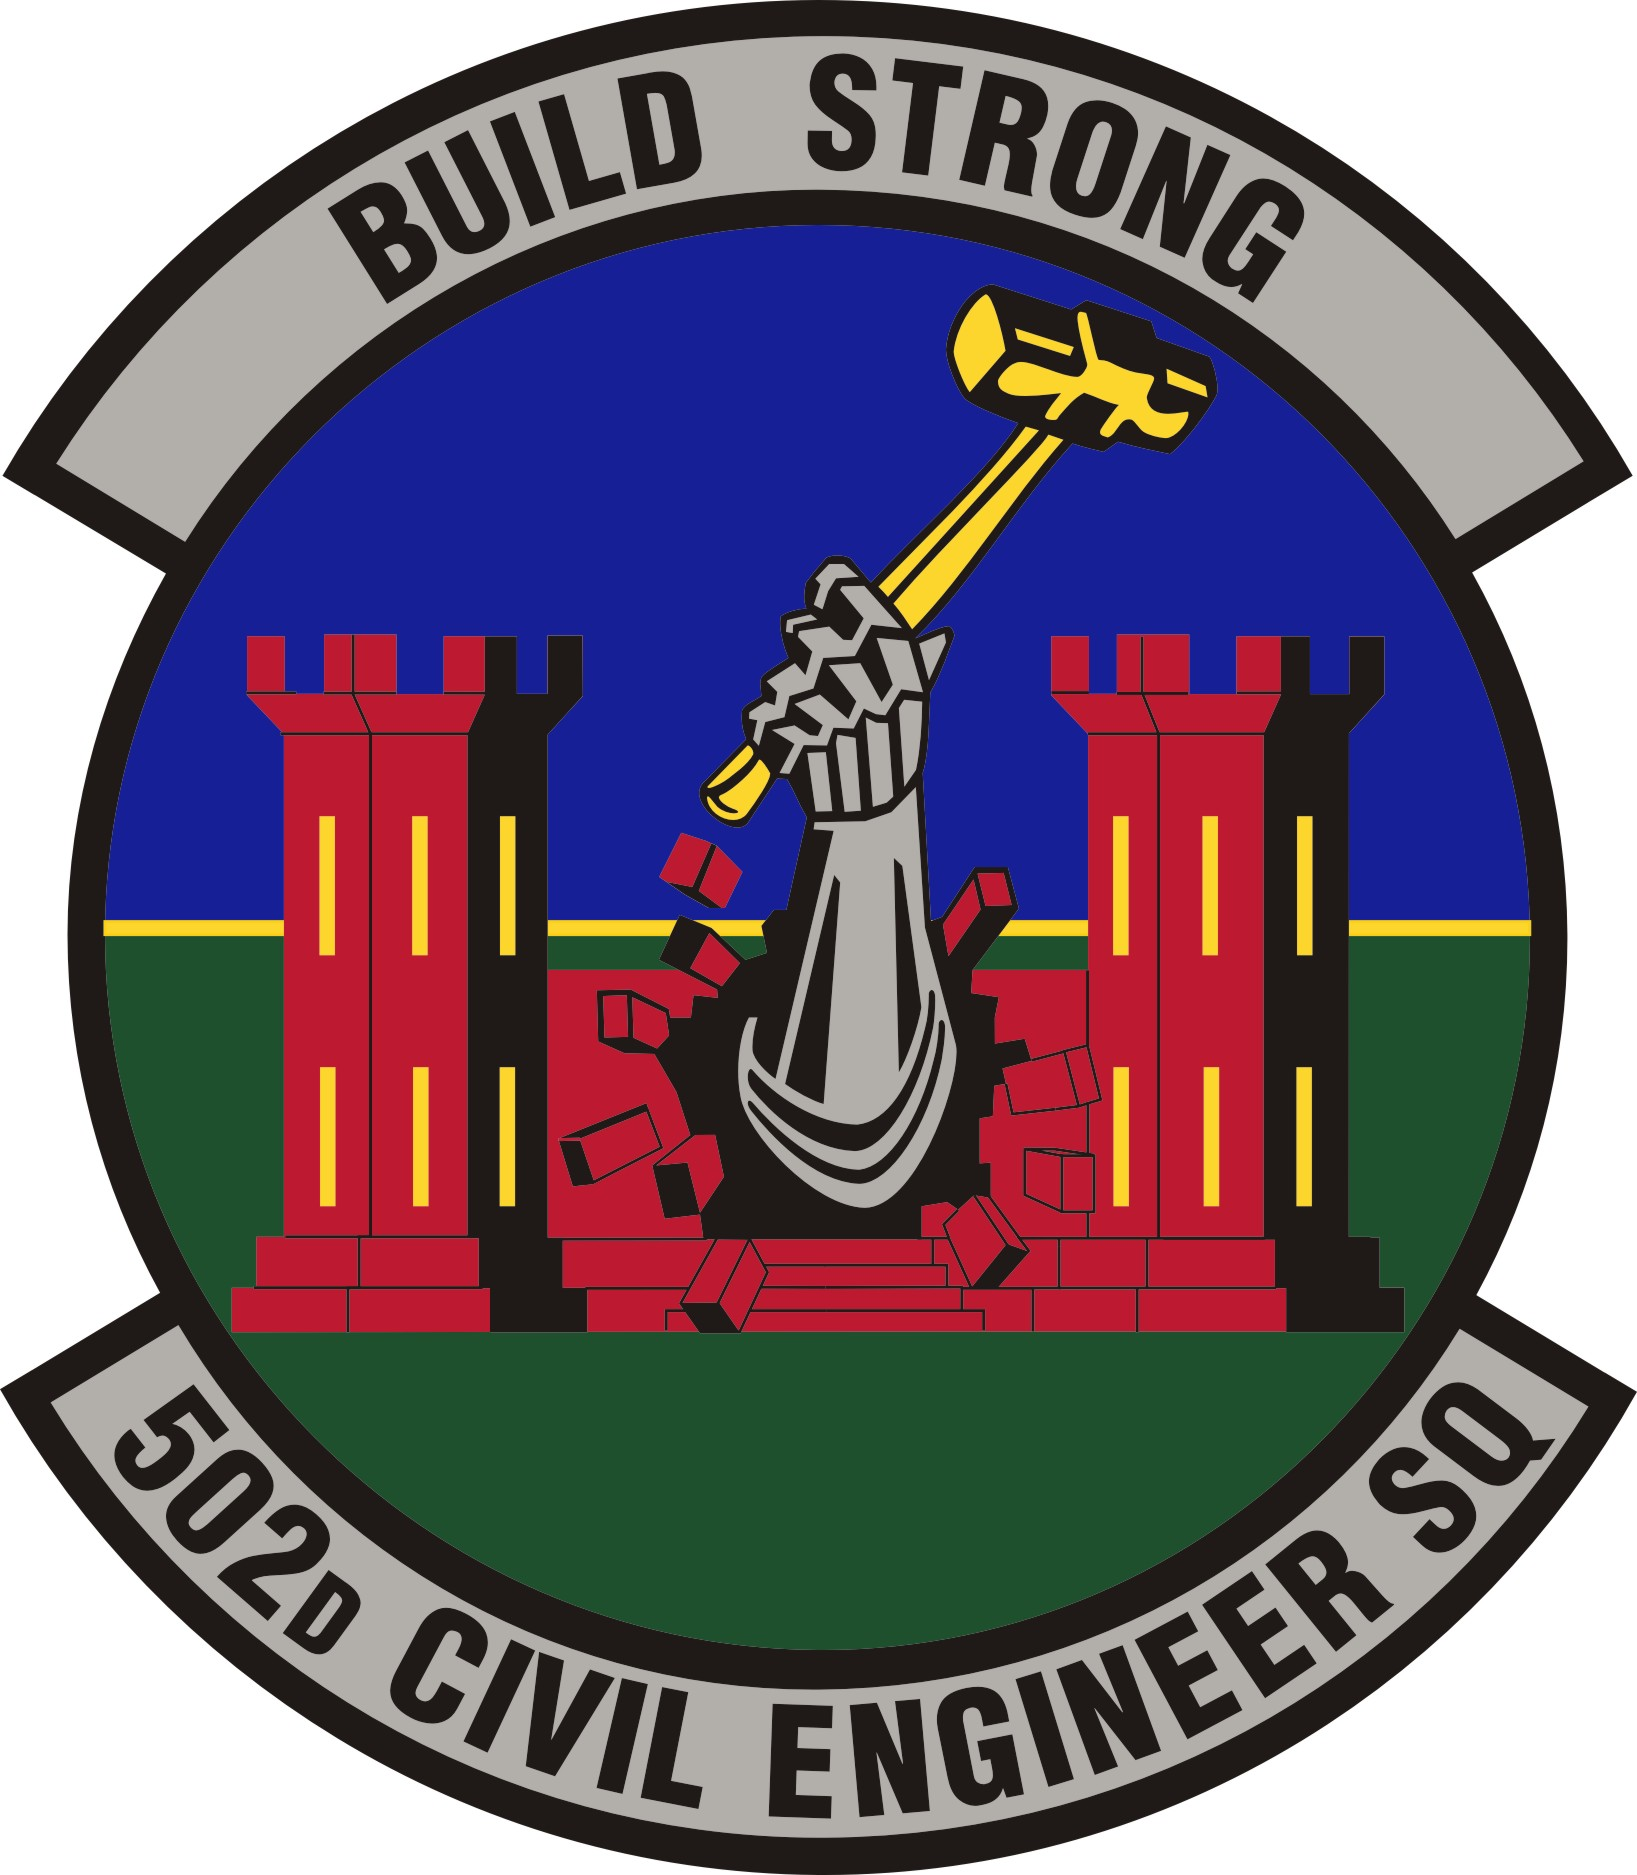 502 Civil Engineer Squadron Aetc Air Force Historical Research